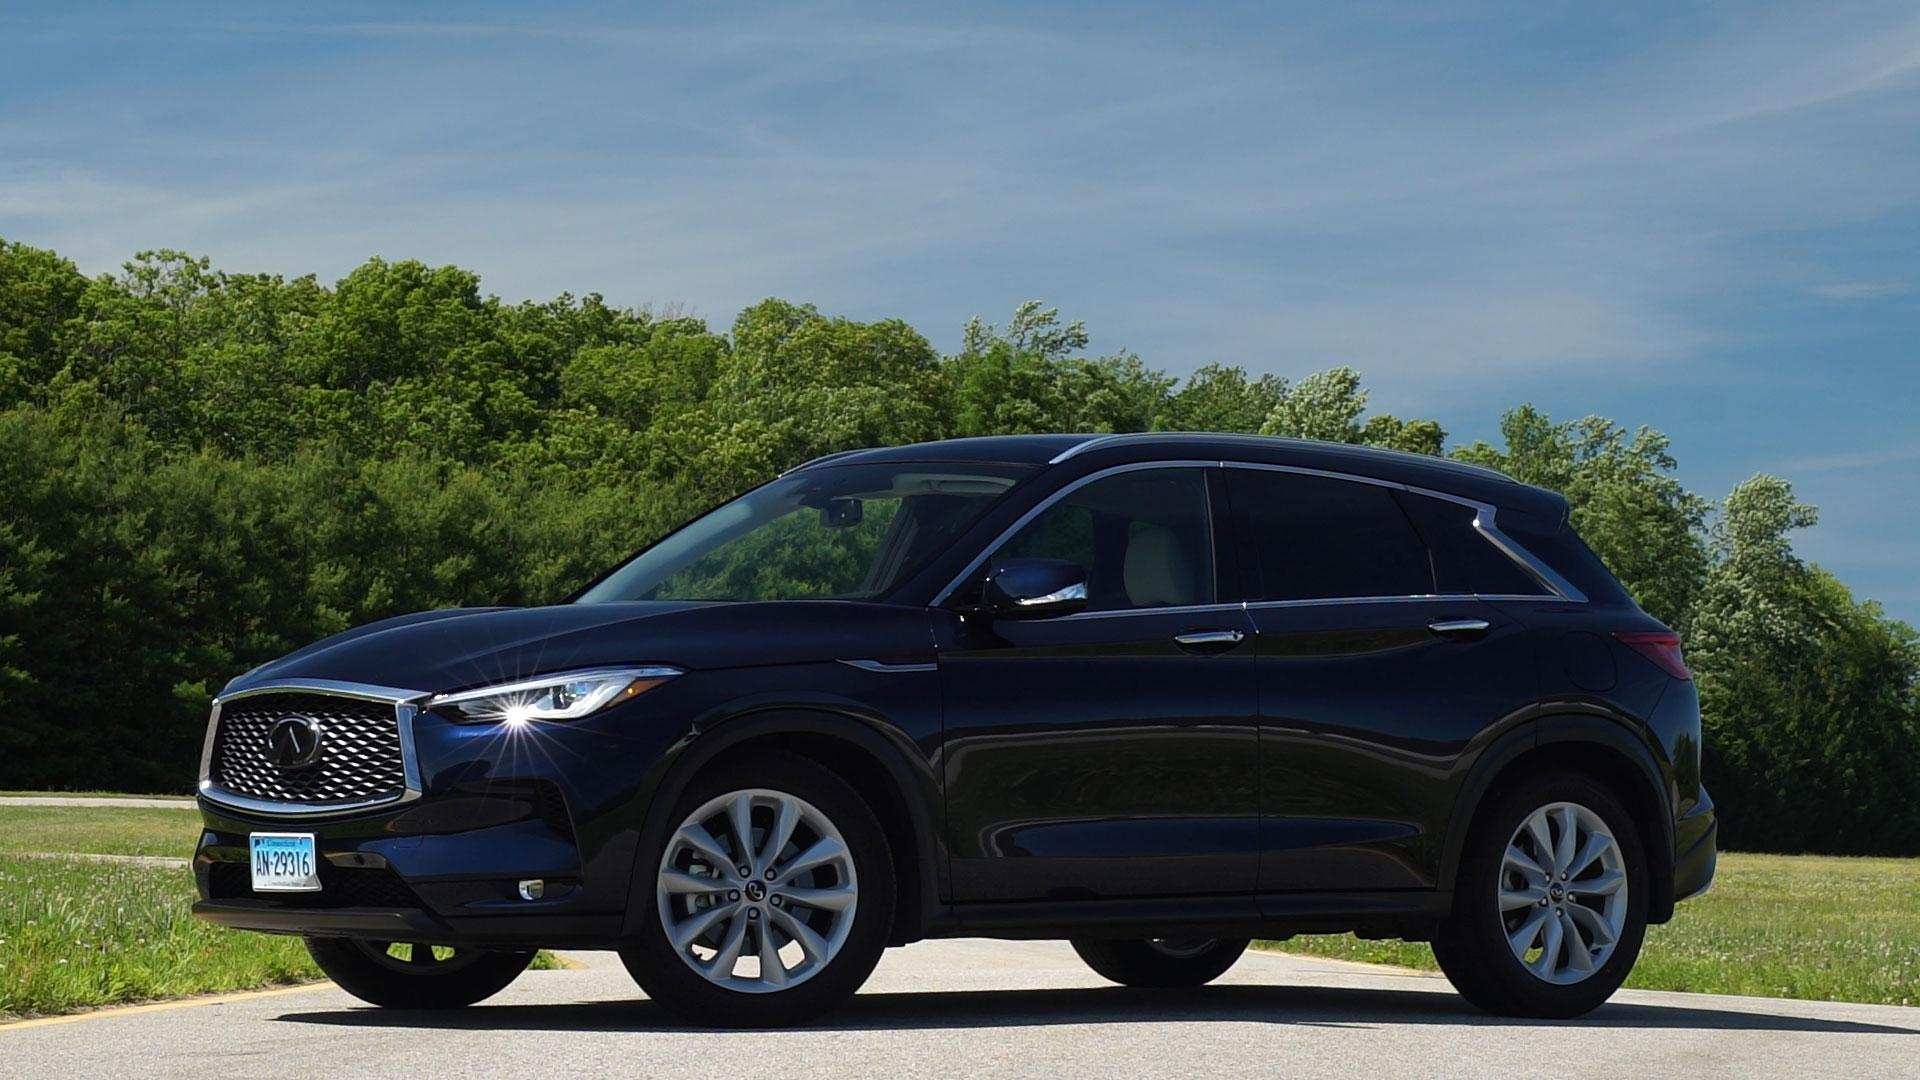 54 New The Infiniti Qx50 2019 Black First Drive Price and Review with The Infiniti Qx50 2019 Black First Drive